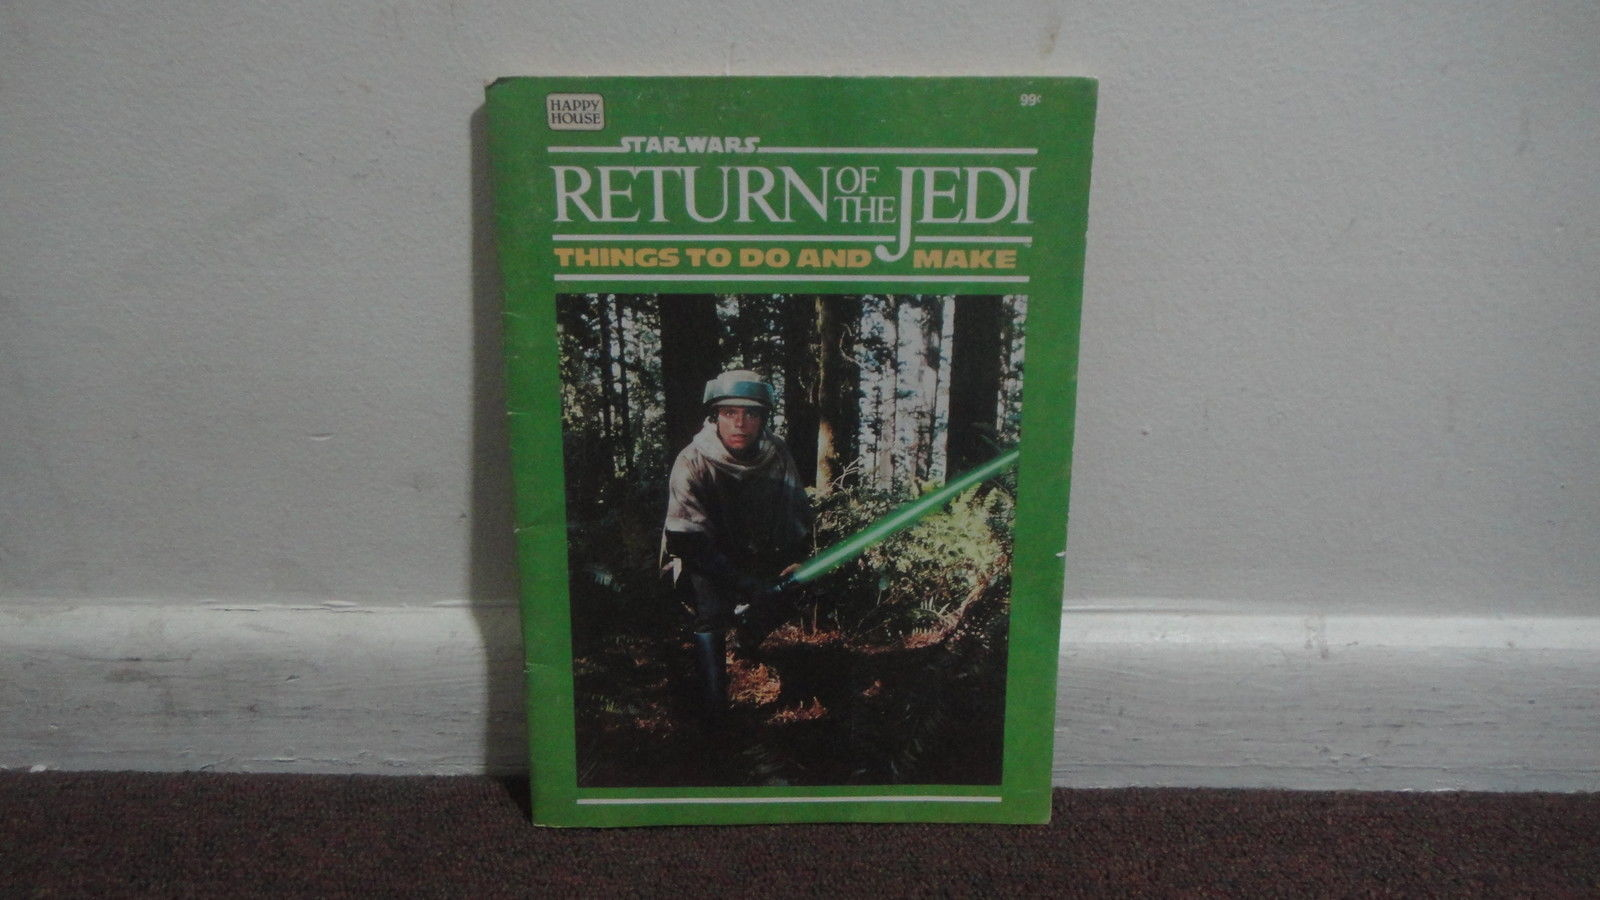 Star Wars House Items Star Wars Return Of The Jedi Things To Do And 50 Similar Items